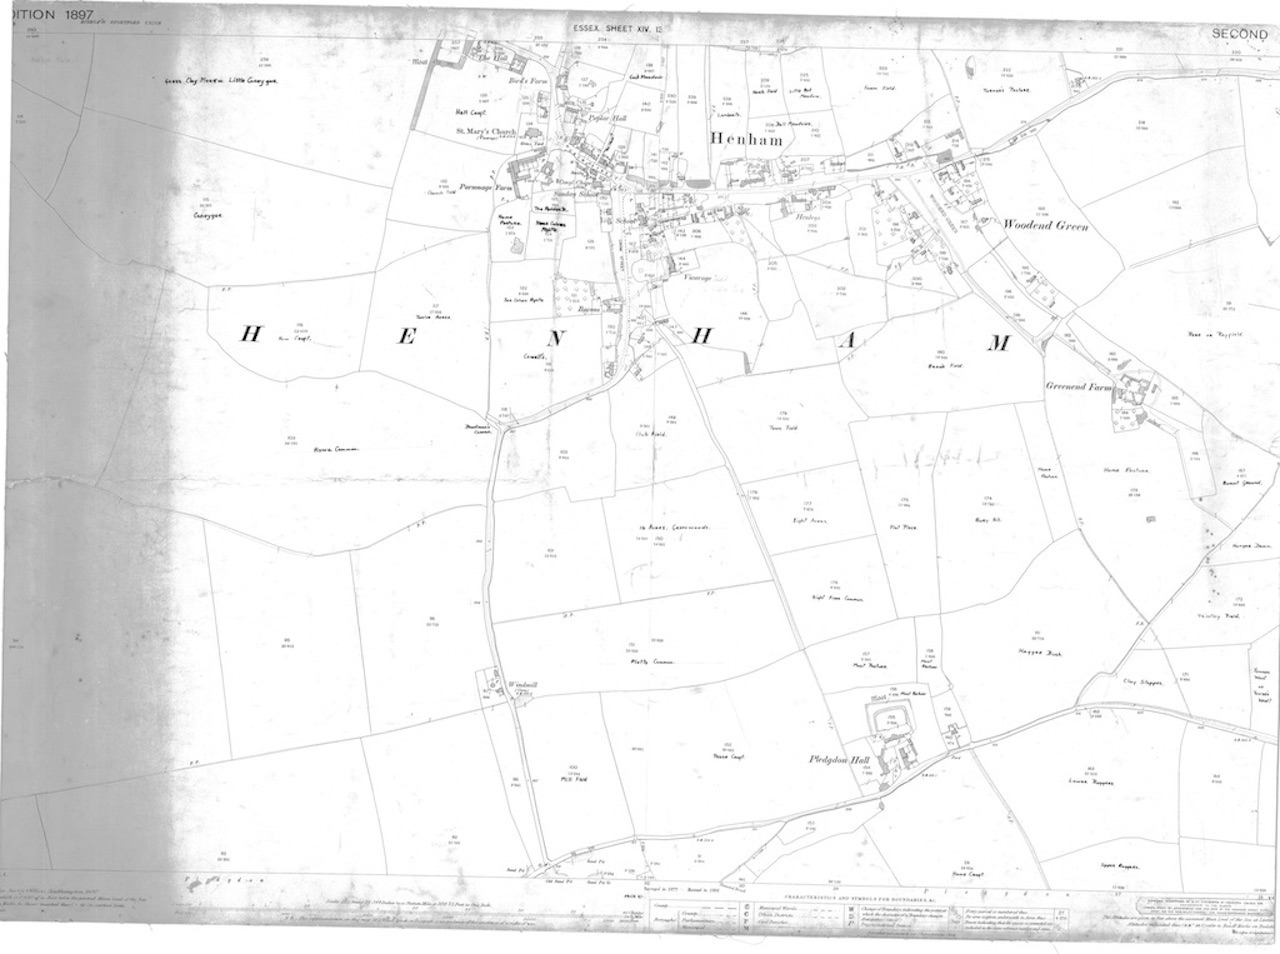 1897 henham map